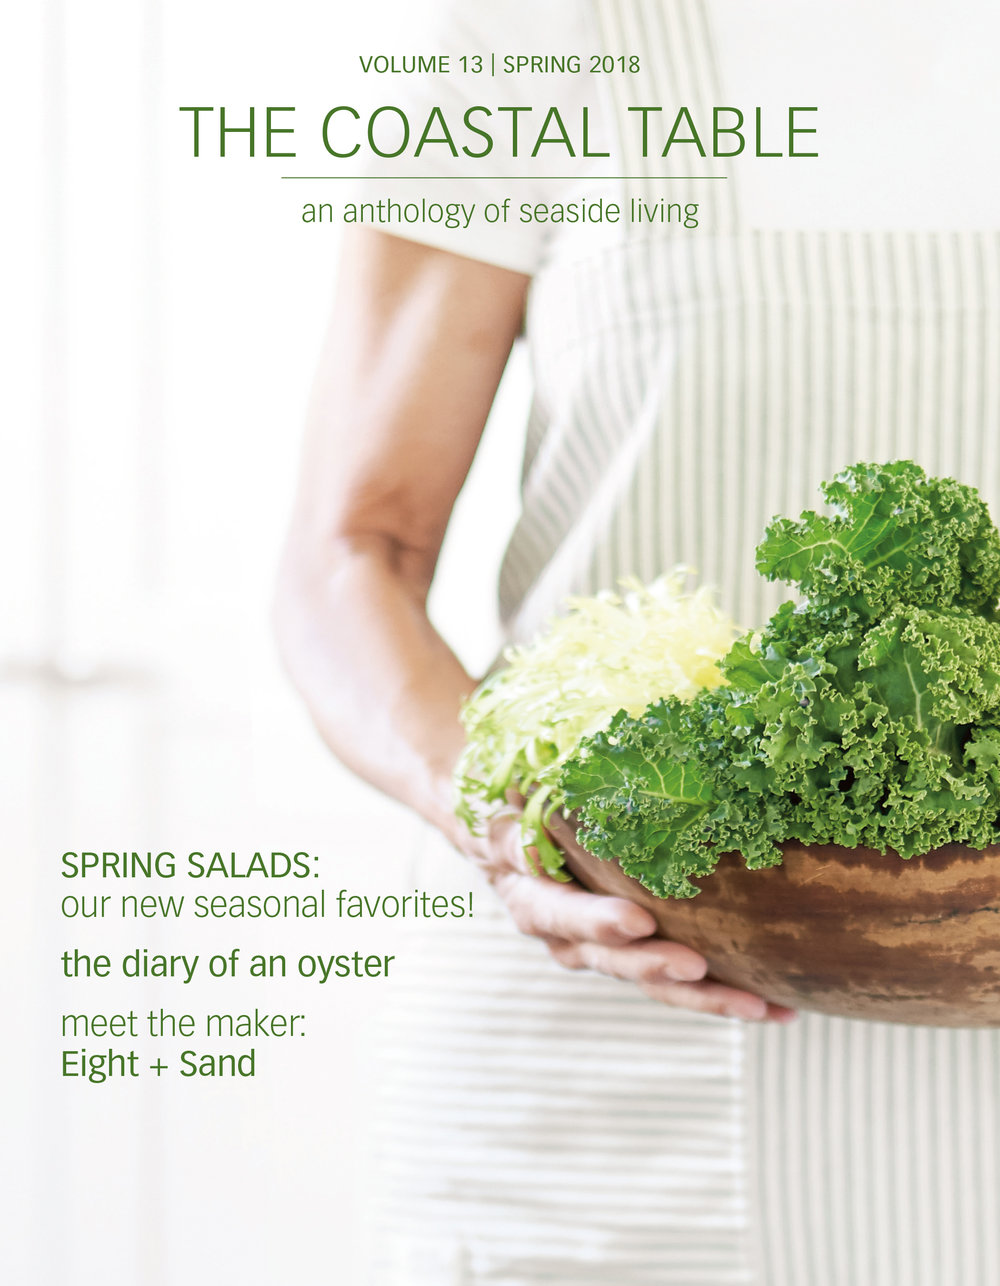 The Coastal Table Spring 2018